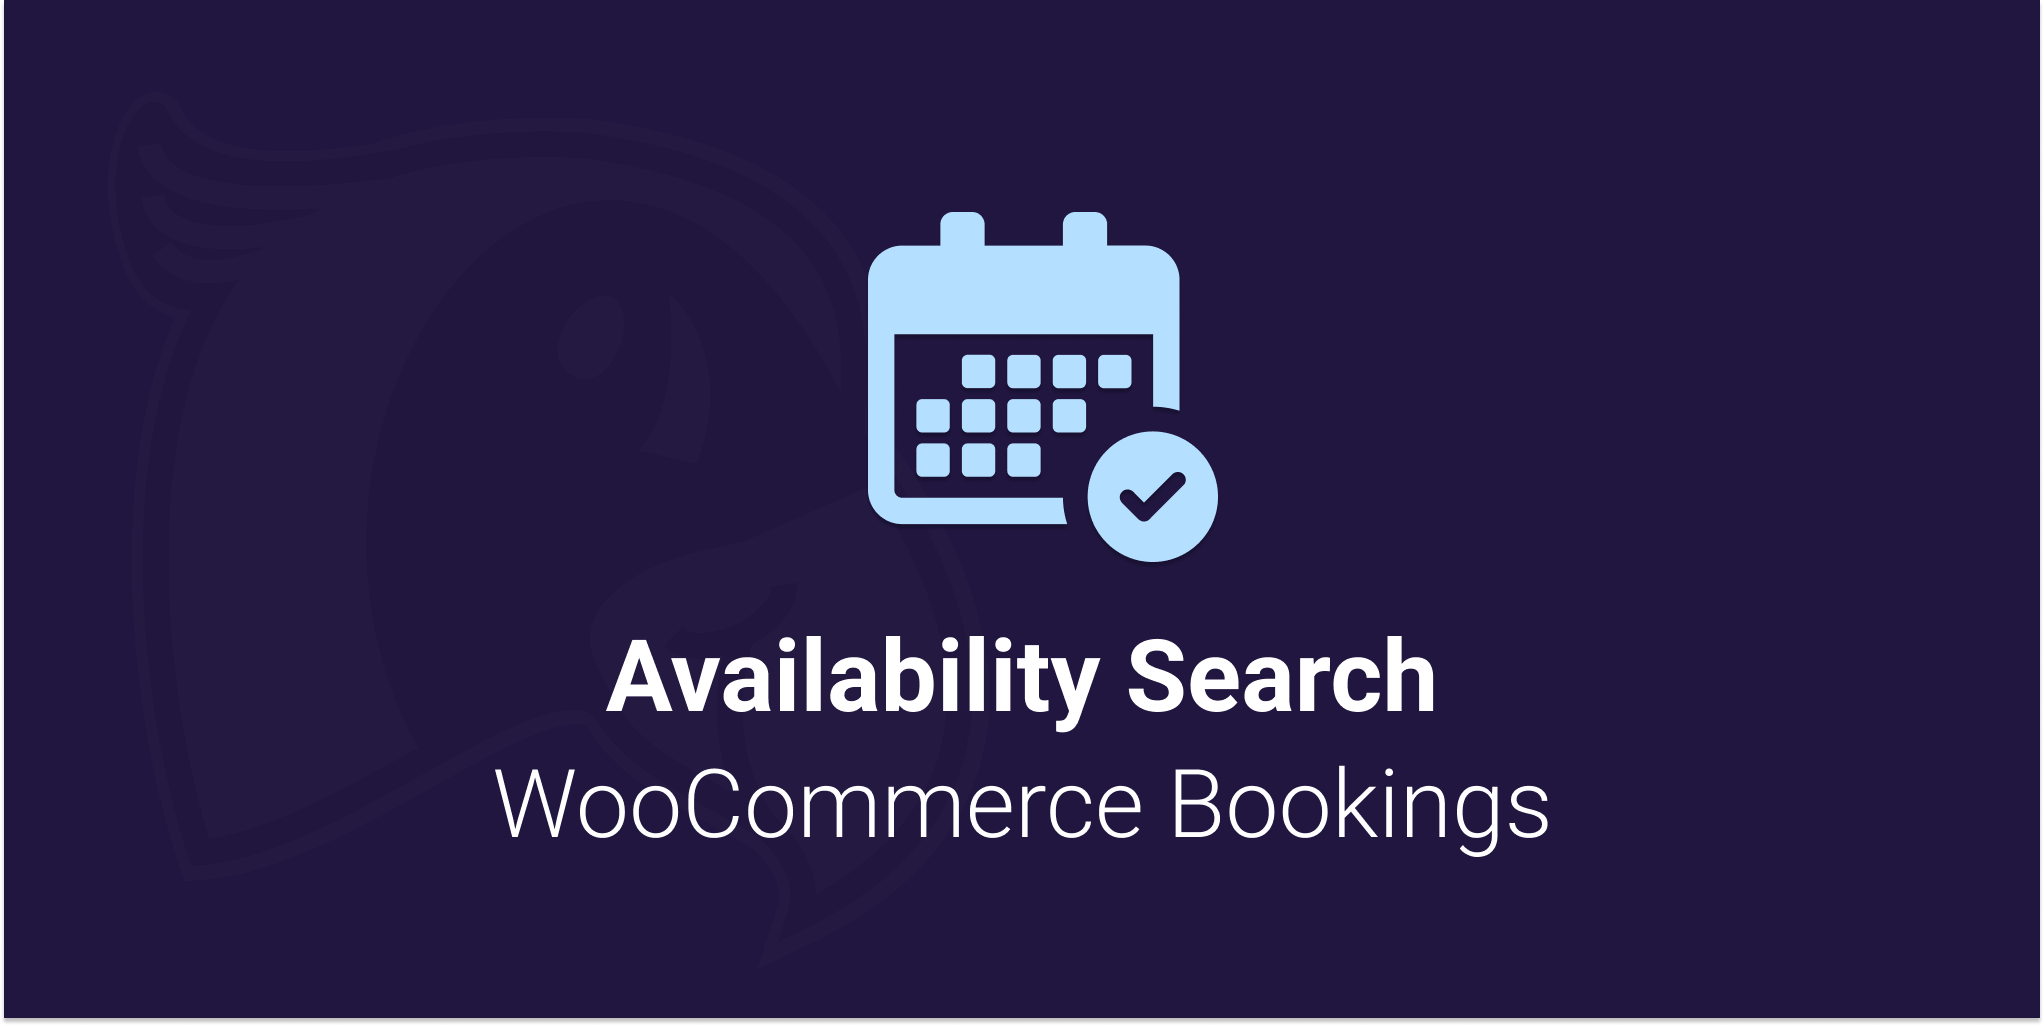 Logo for Availability Search for WooCommerce Bookings